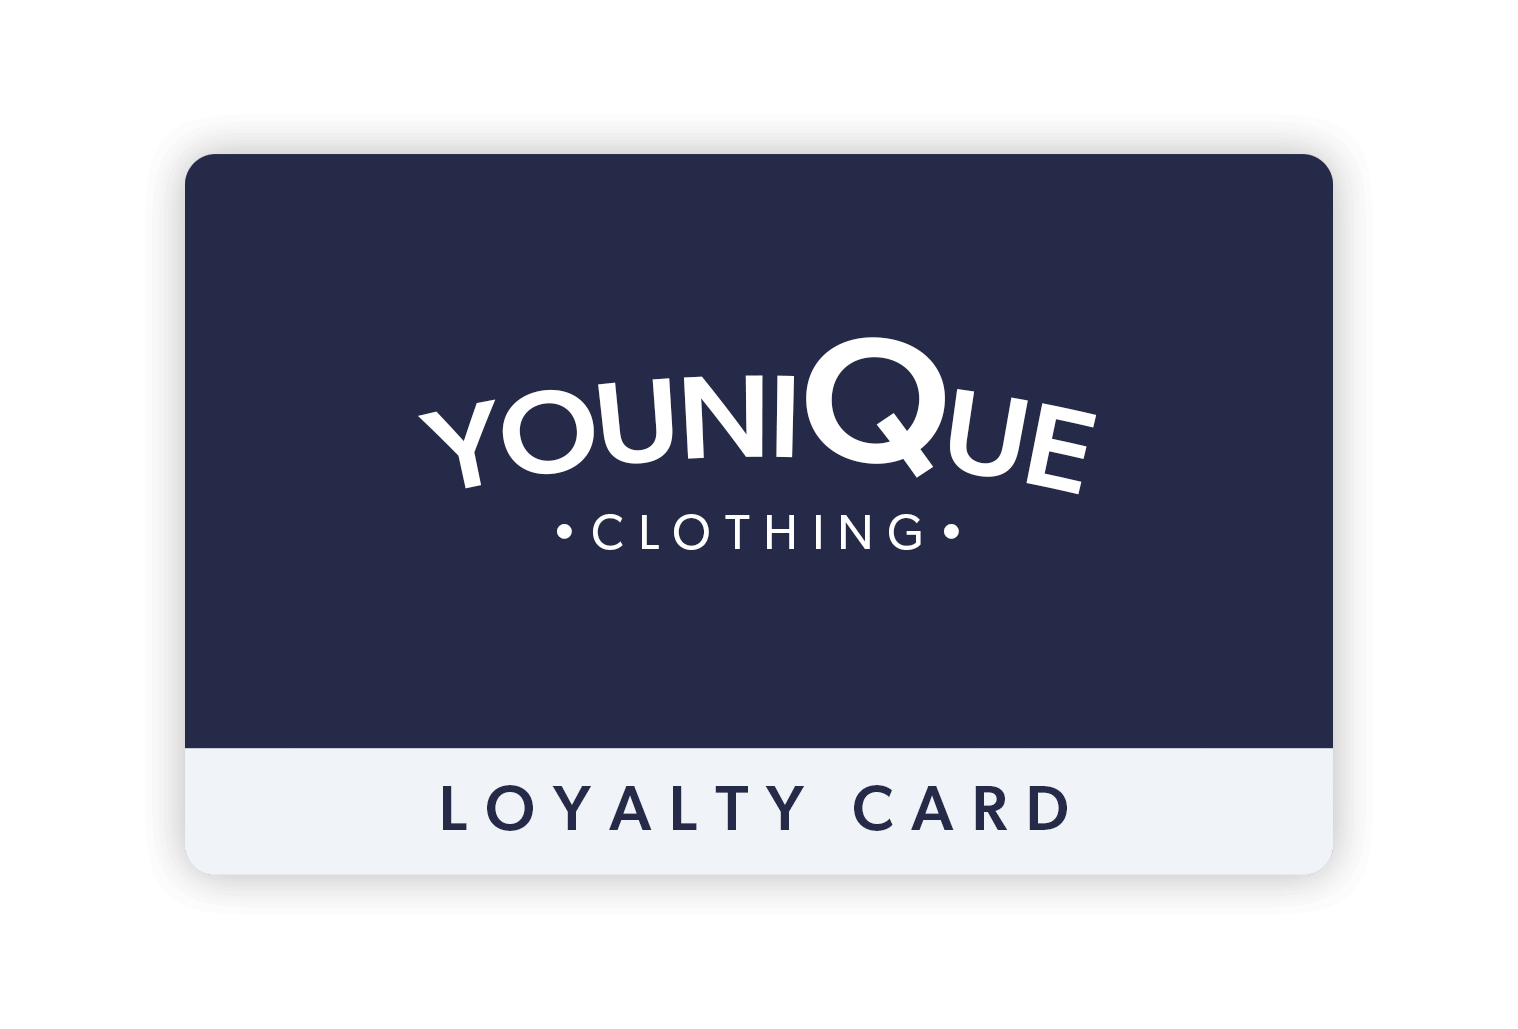 YouniQue Clothing retail loyalty card